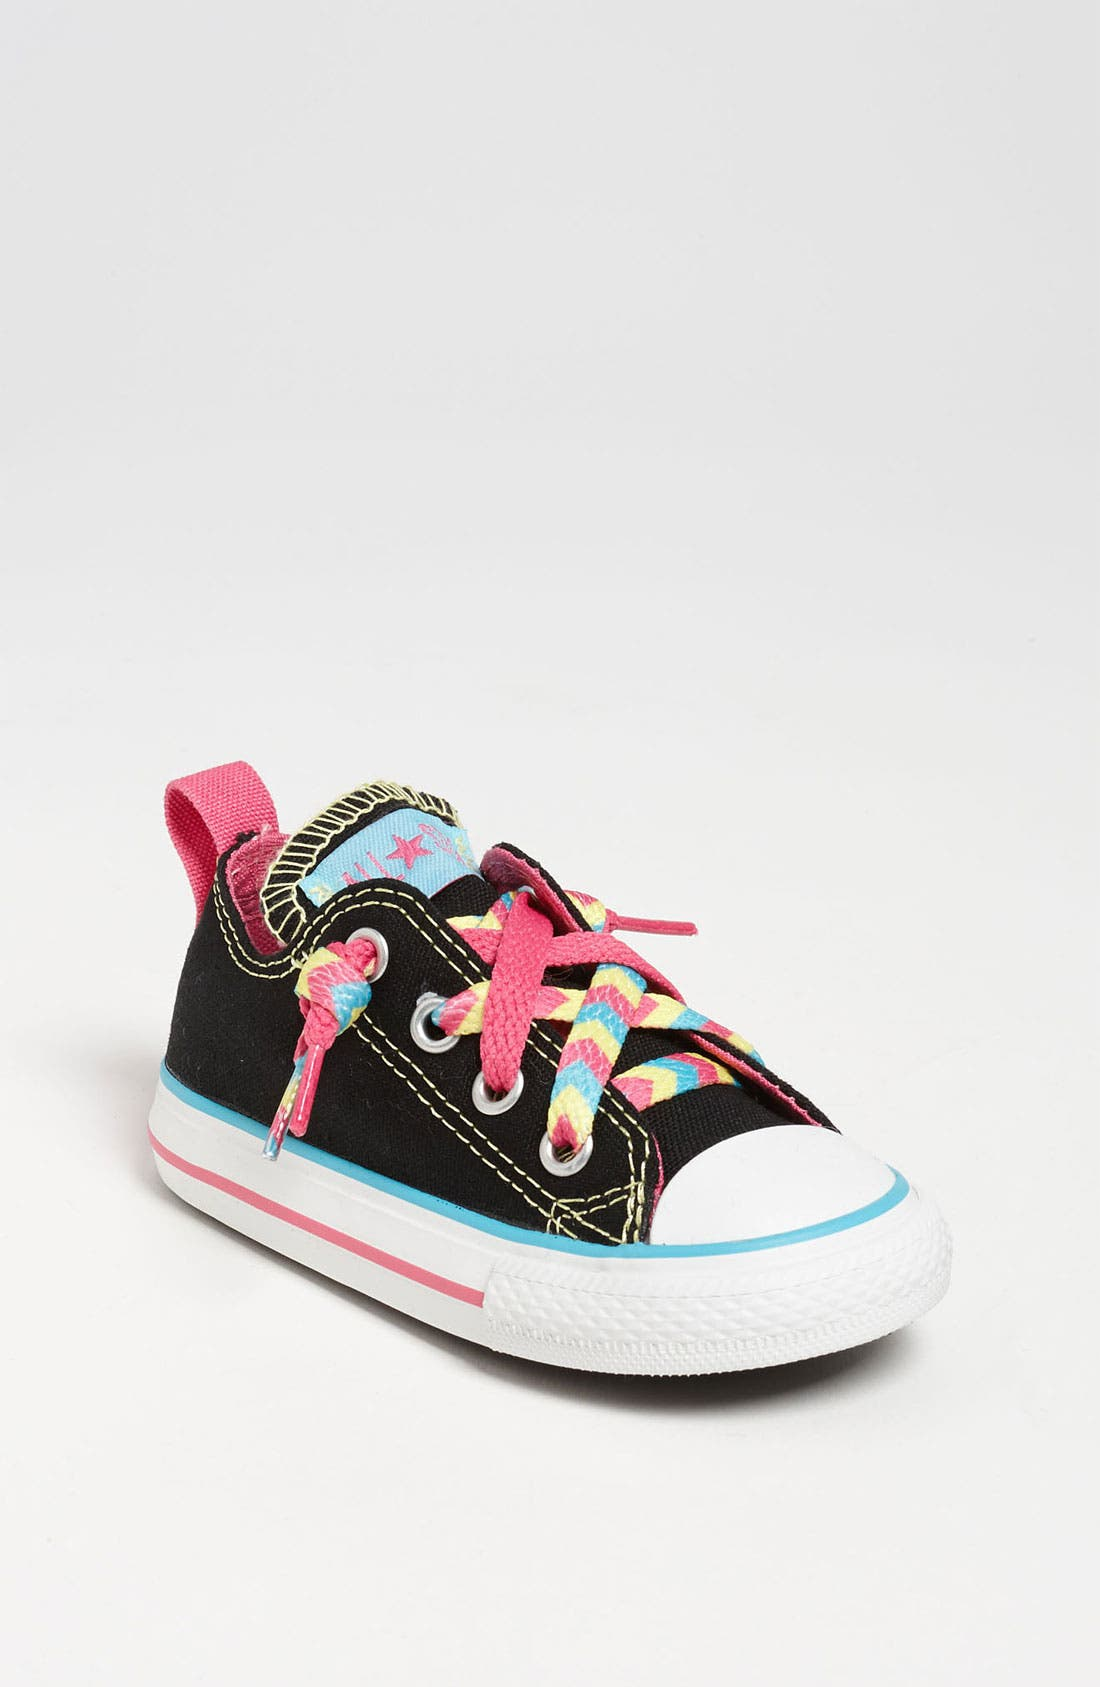 Alternate Image 1 Selected - Converse Chuck Taylor® All Star® 'Kriss N Kross' Sneaker (Baby, Walker & Toddler)